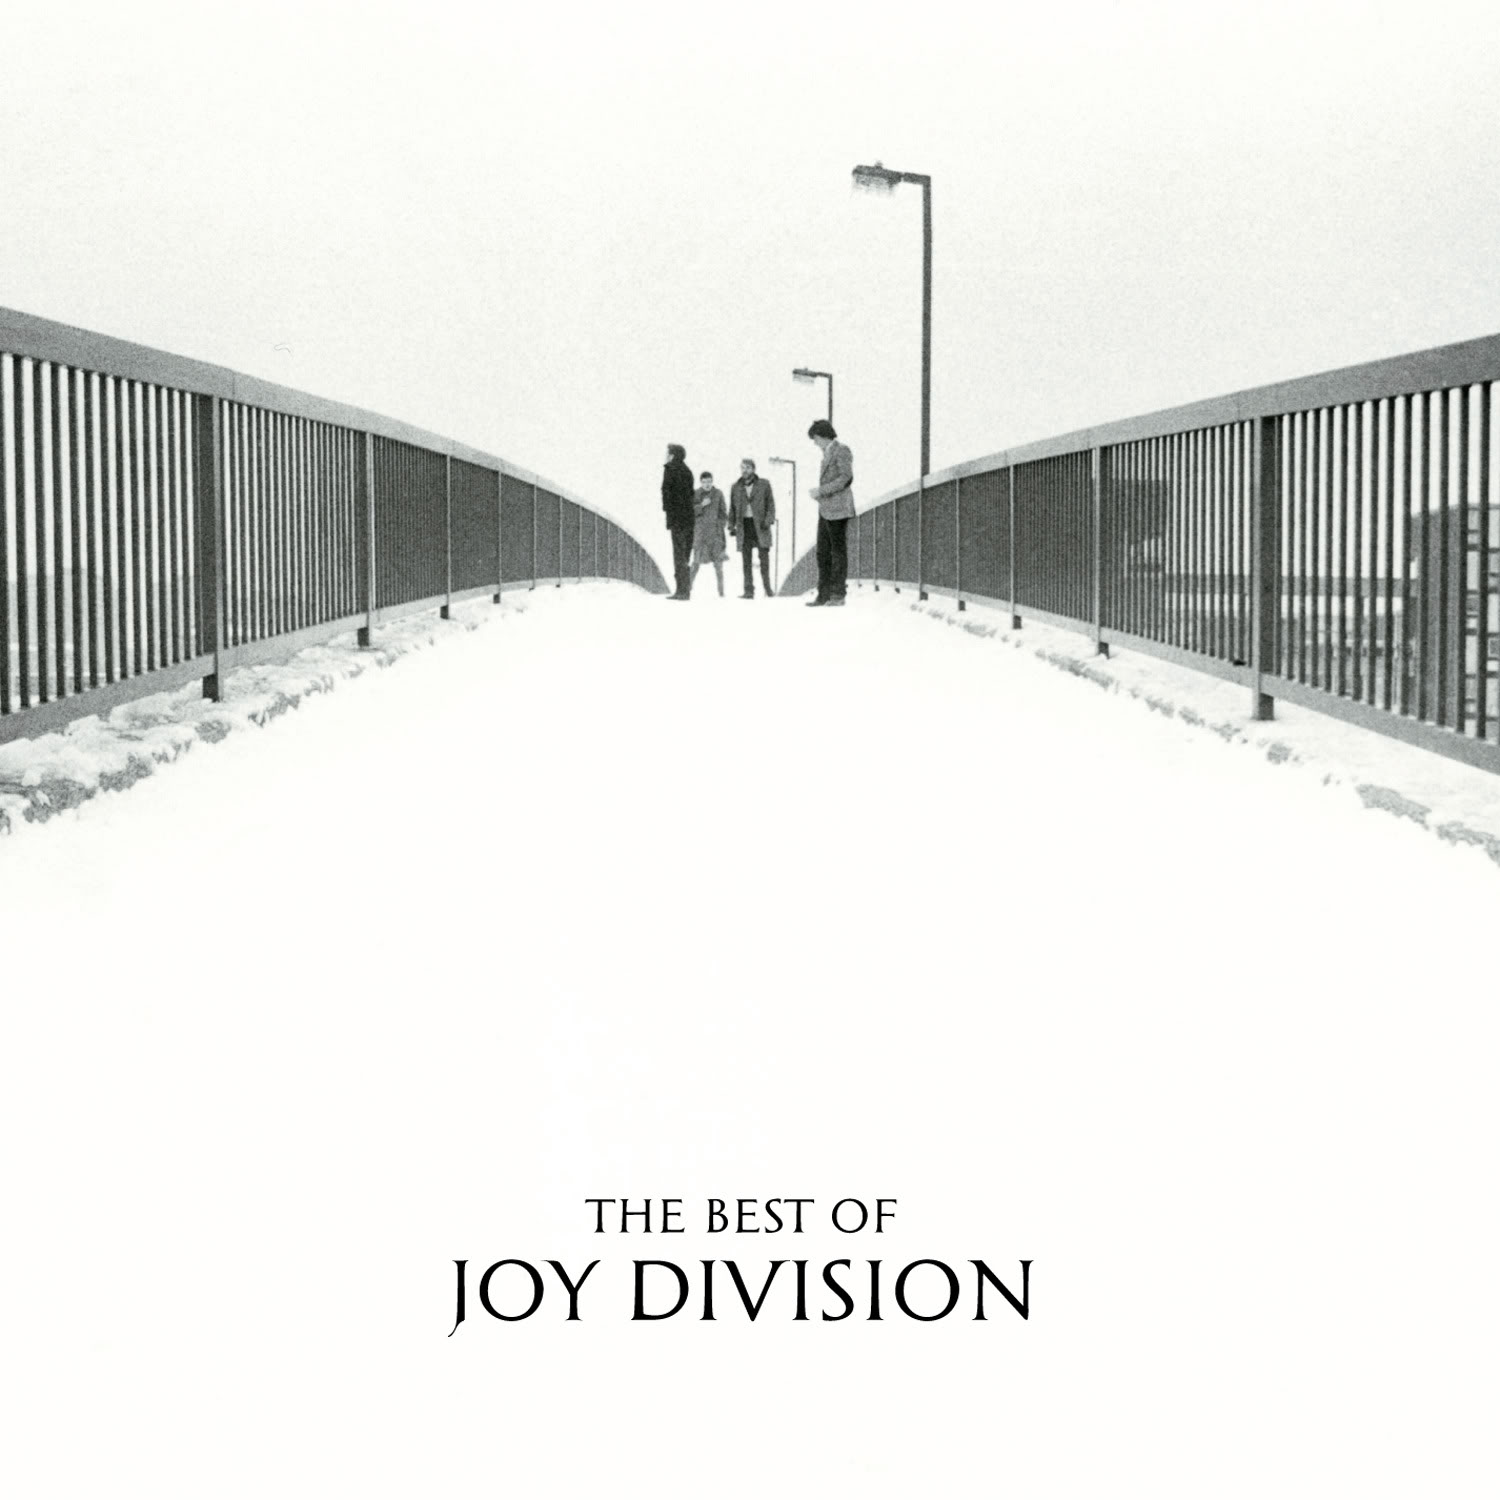 Joy Division: The Best Of (2008) Book Cover